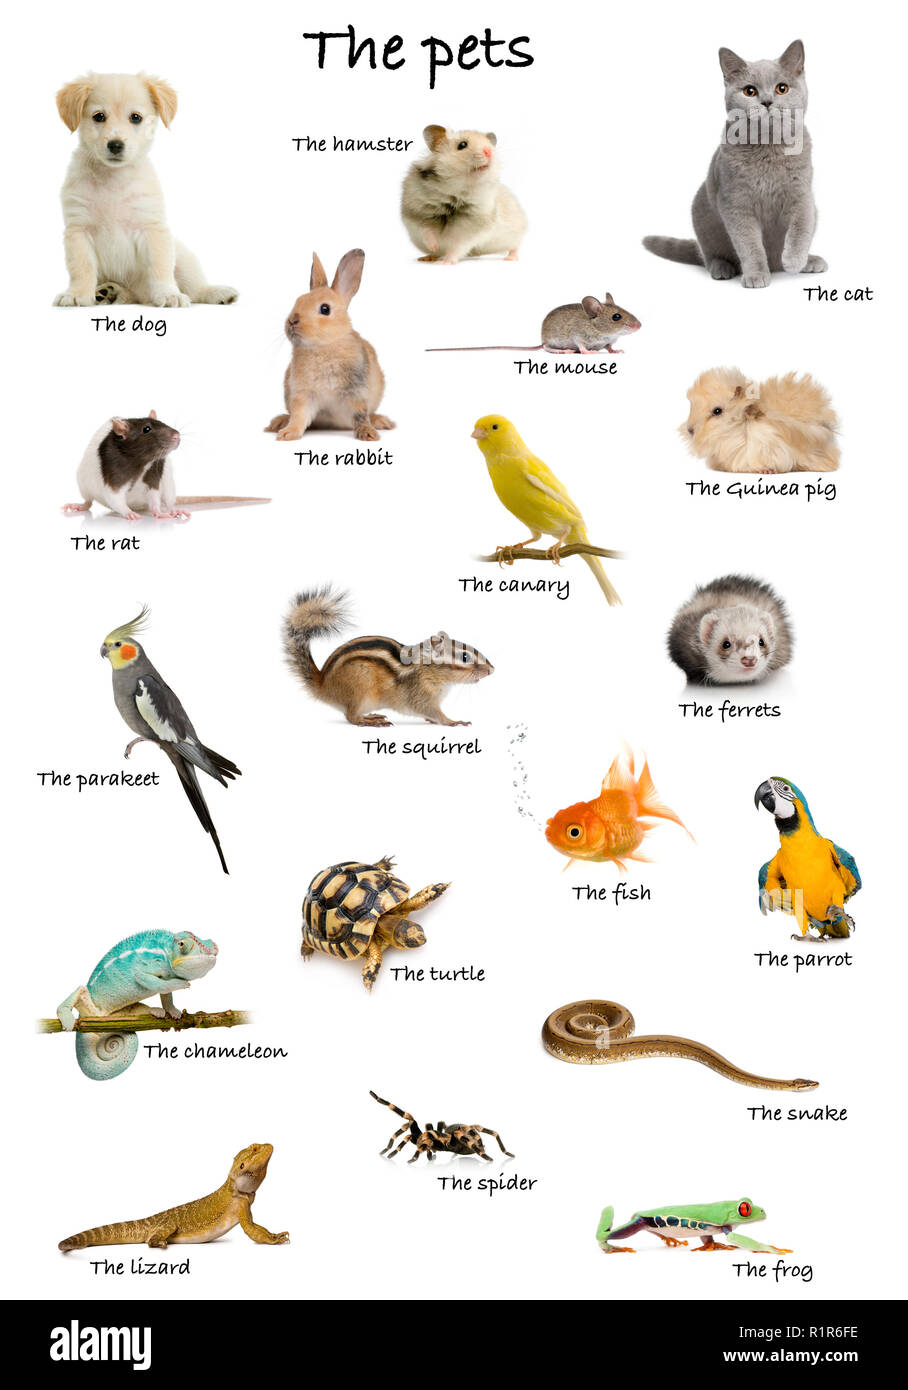 Italian English Animsld: Animal Mammals Collage Stock Photos & Animal Mammals